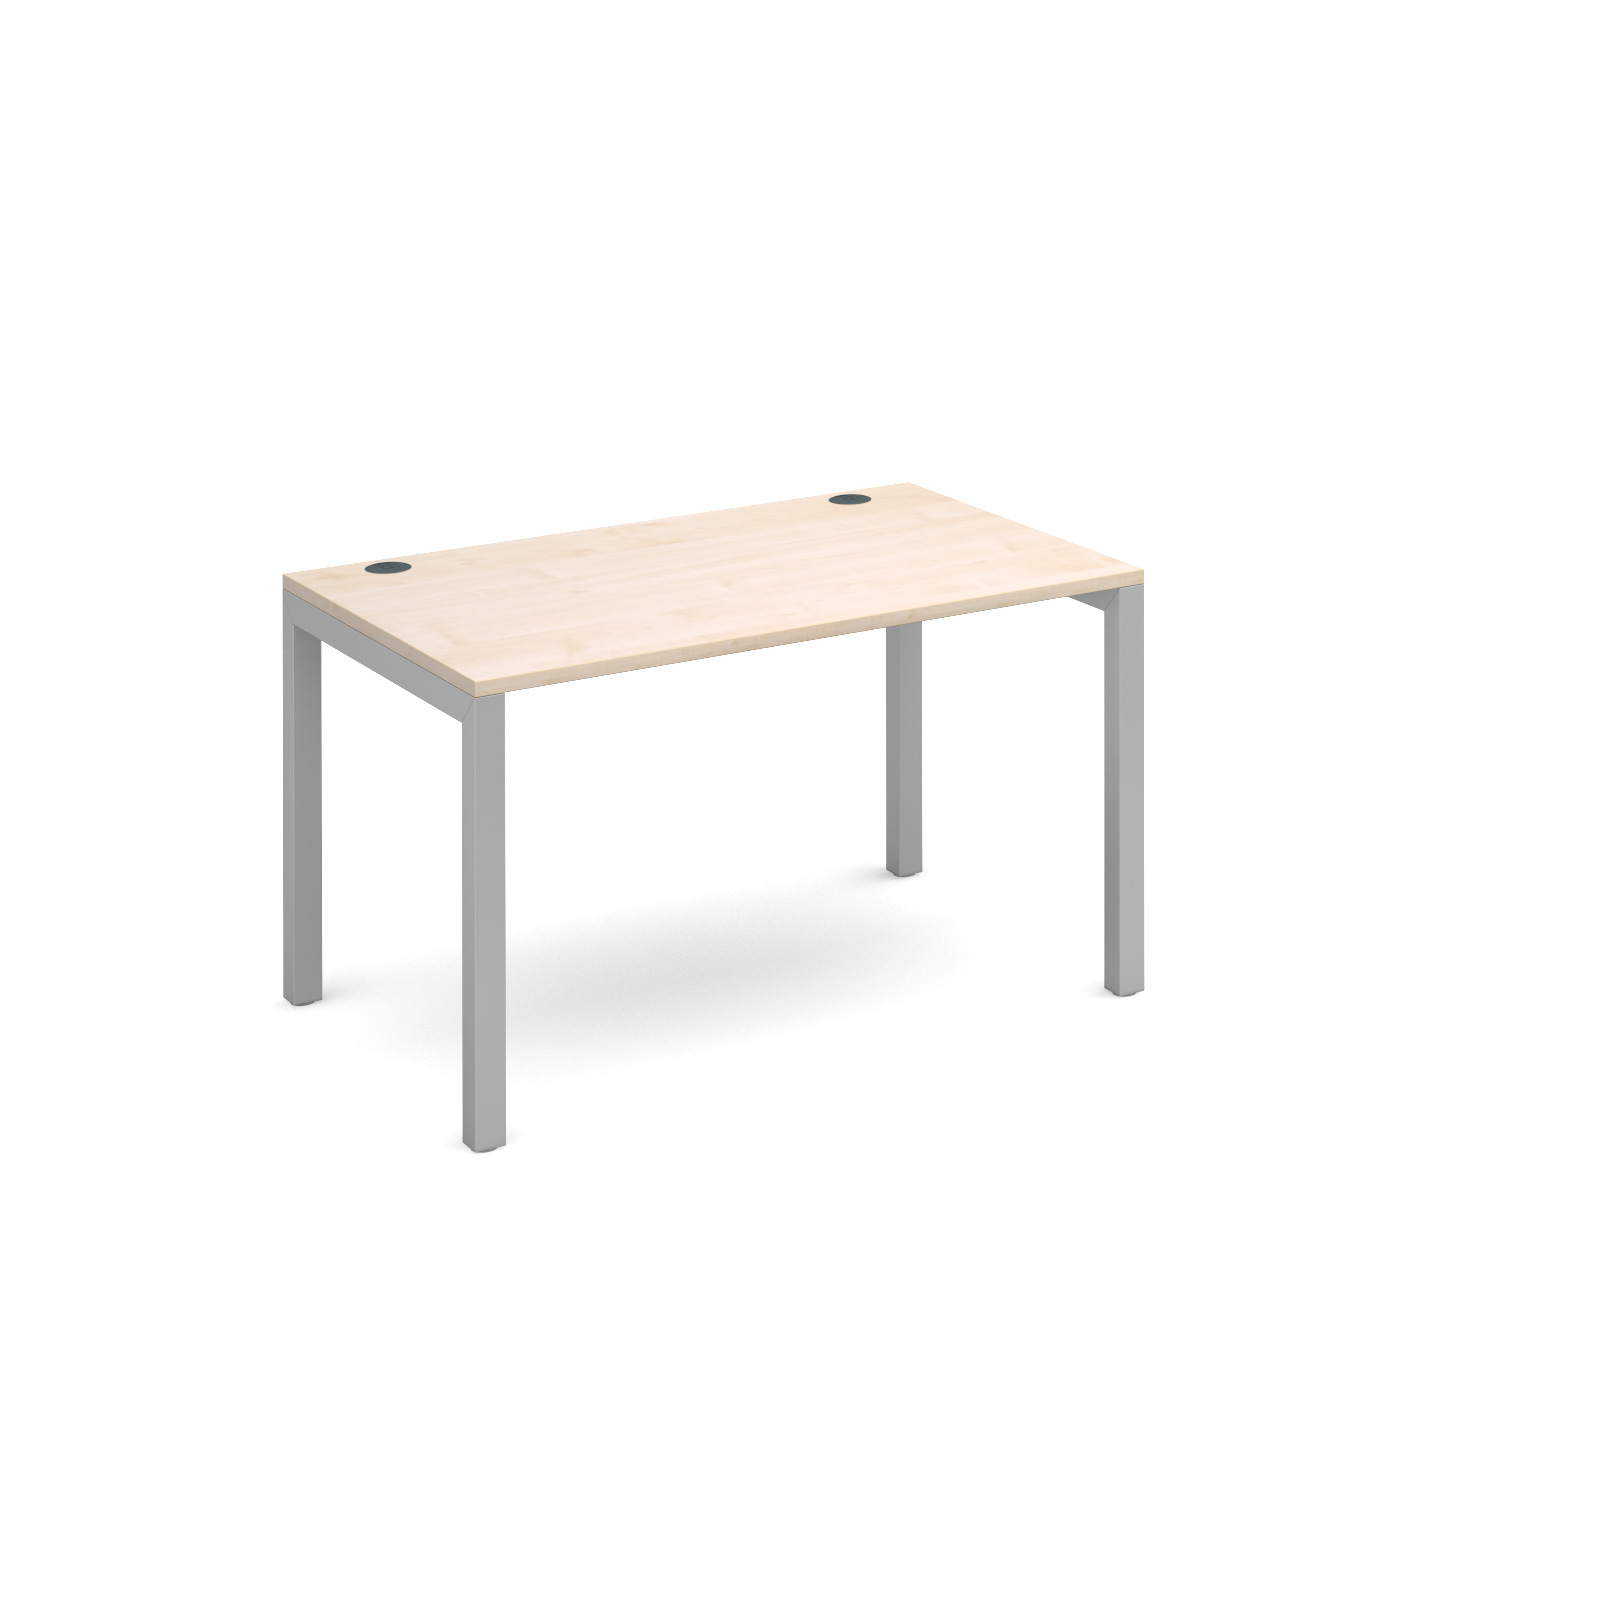 Dams Connex Maple Single Bench Desk